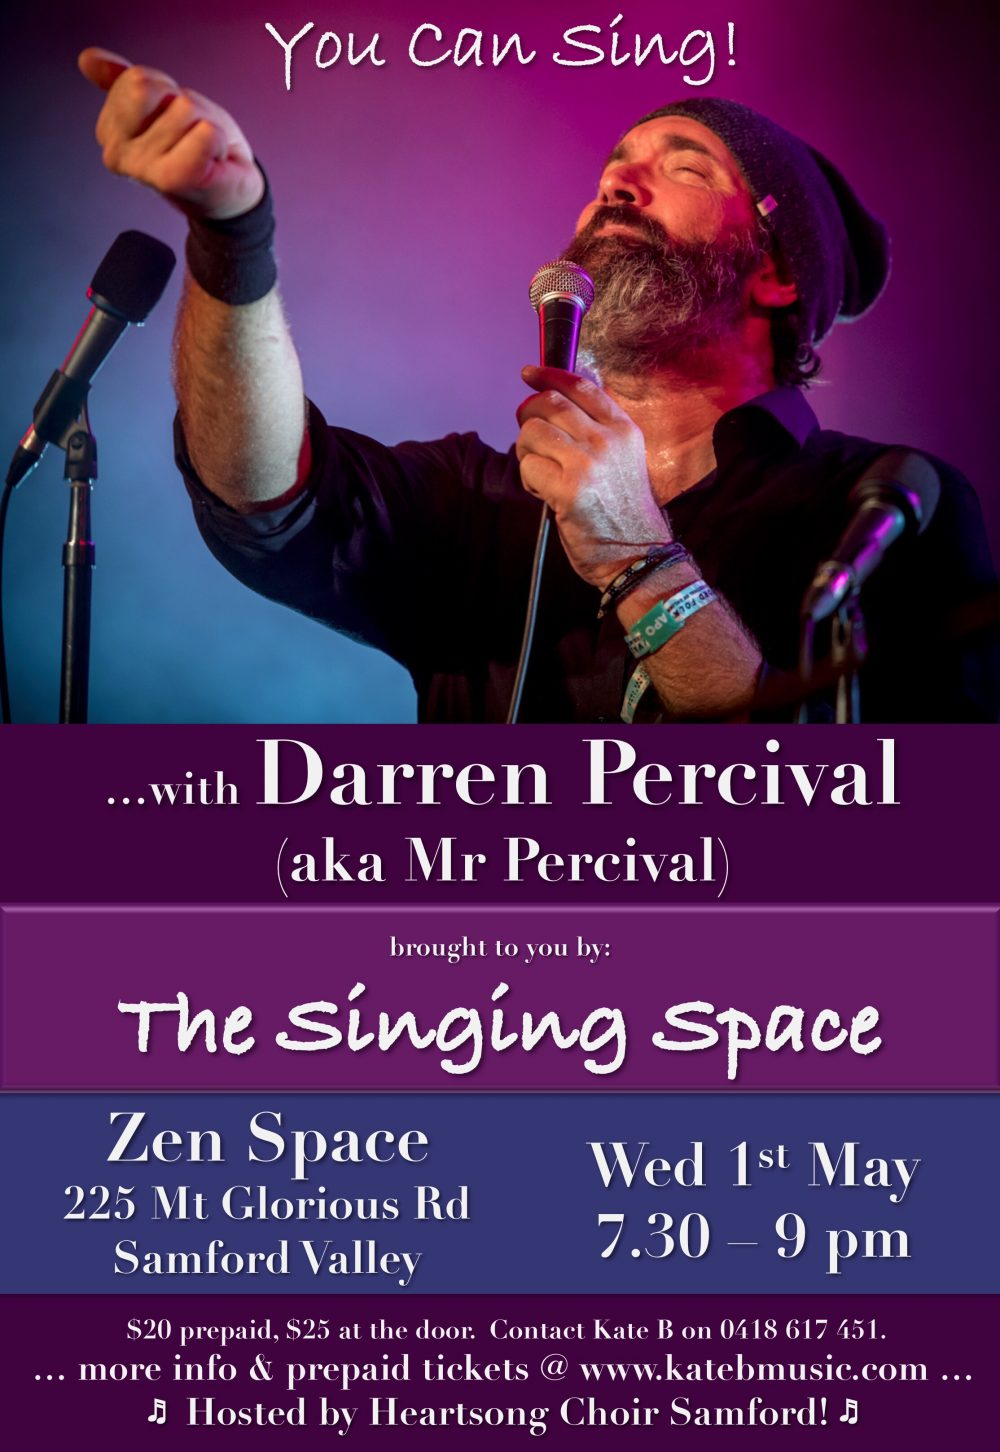 You Can Sing (Darren Percival) Poster